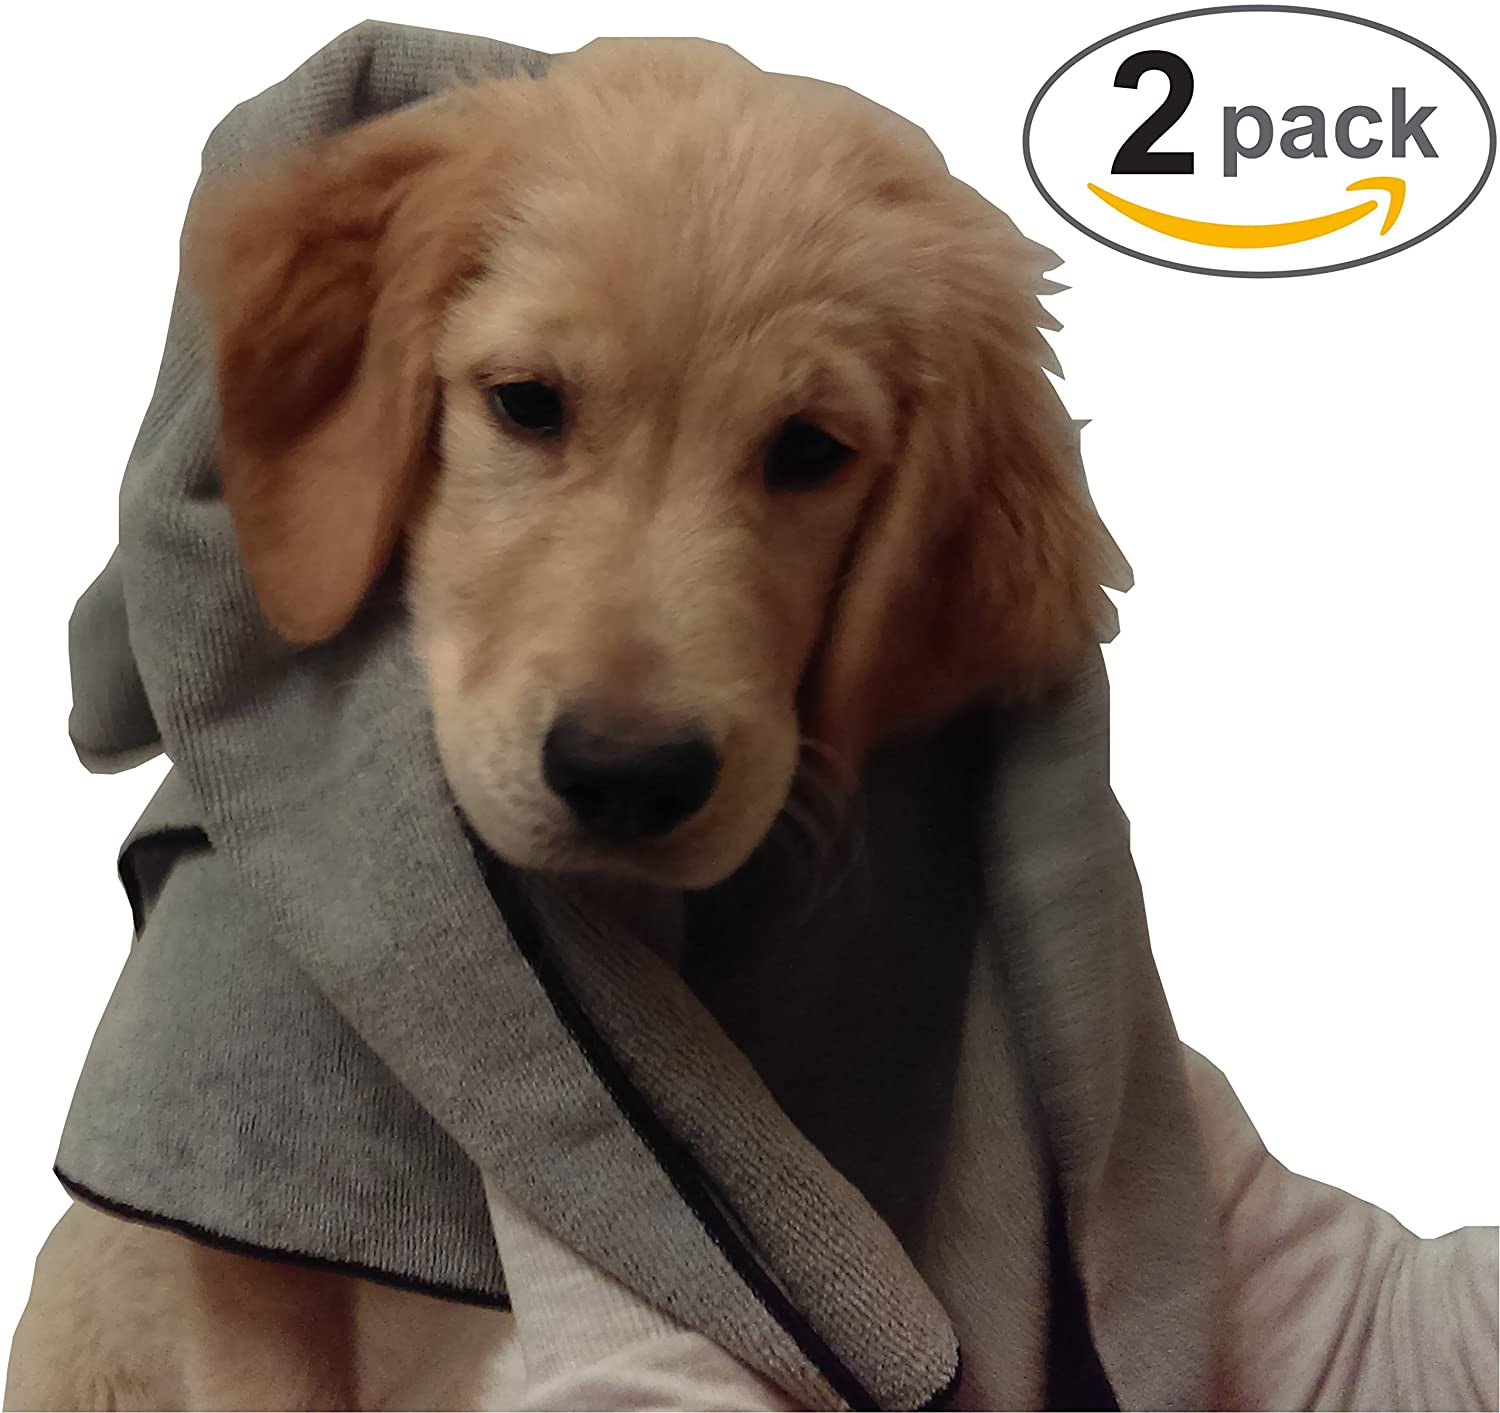 "2 Pack Microfiber Pet Bath Towels For Cleaning Dogs & Cats - Large 20""x40"" - Hypoallergenic Chemical-Free Cleaning And Grooming Absorbent Animal Blanket Cloths"